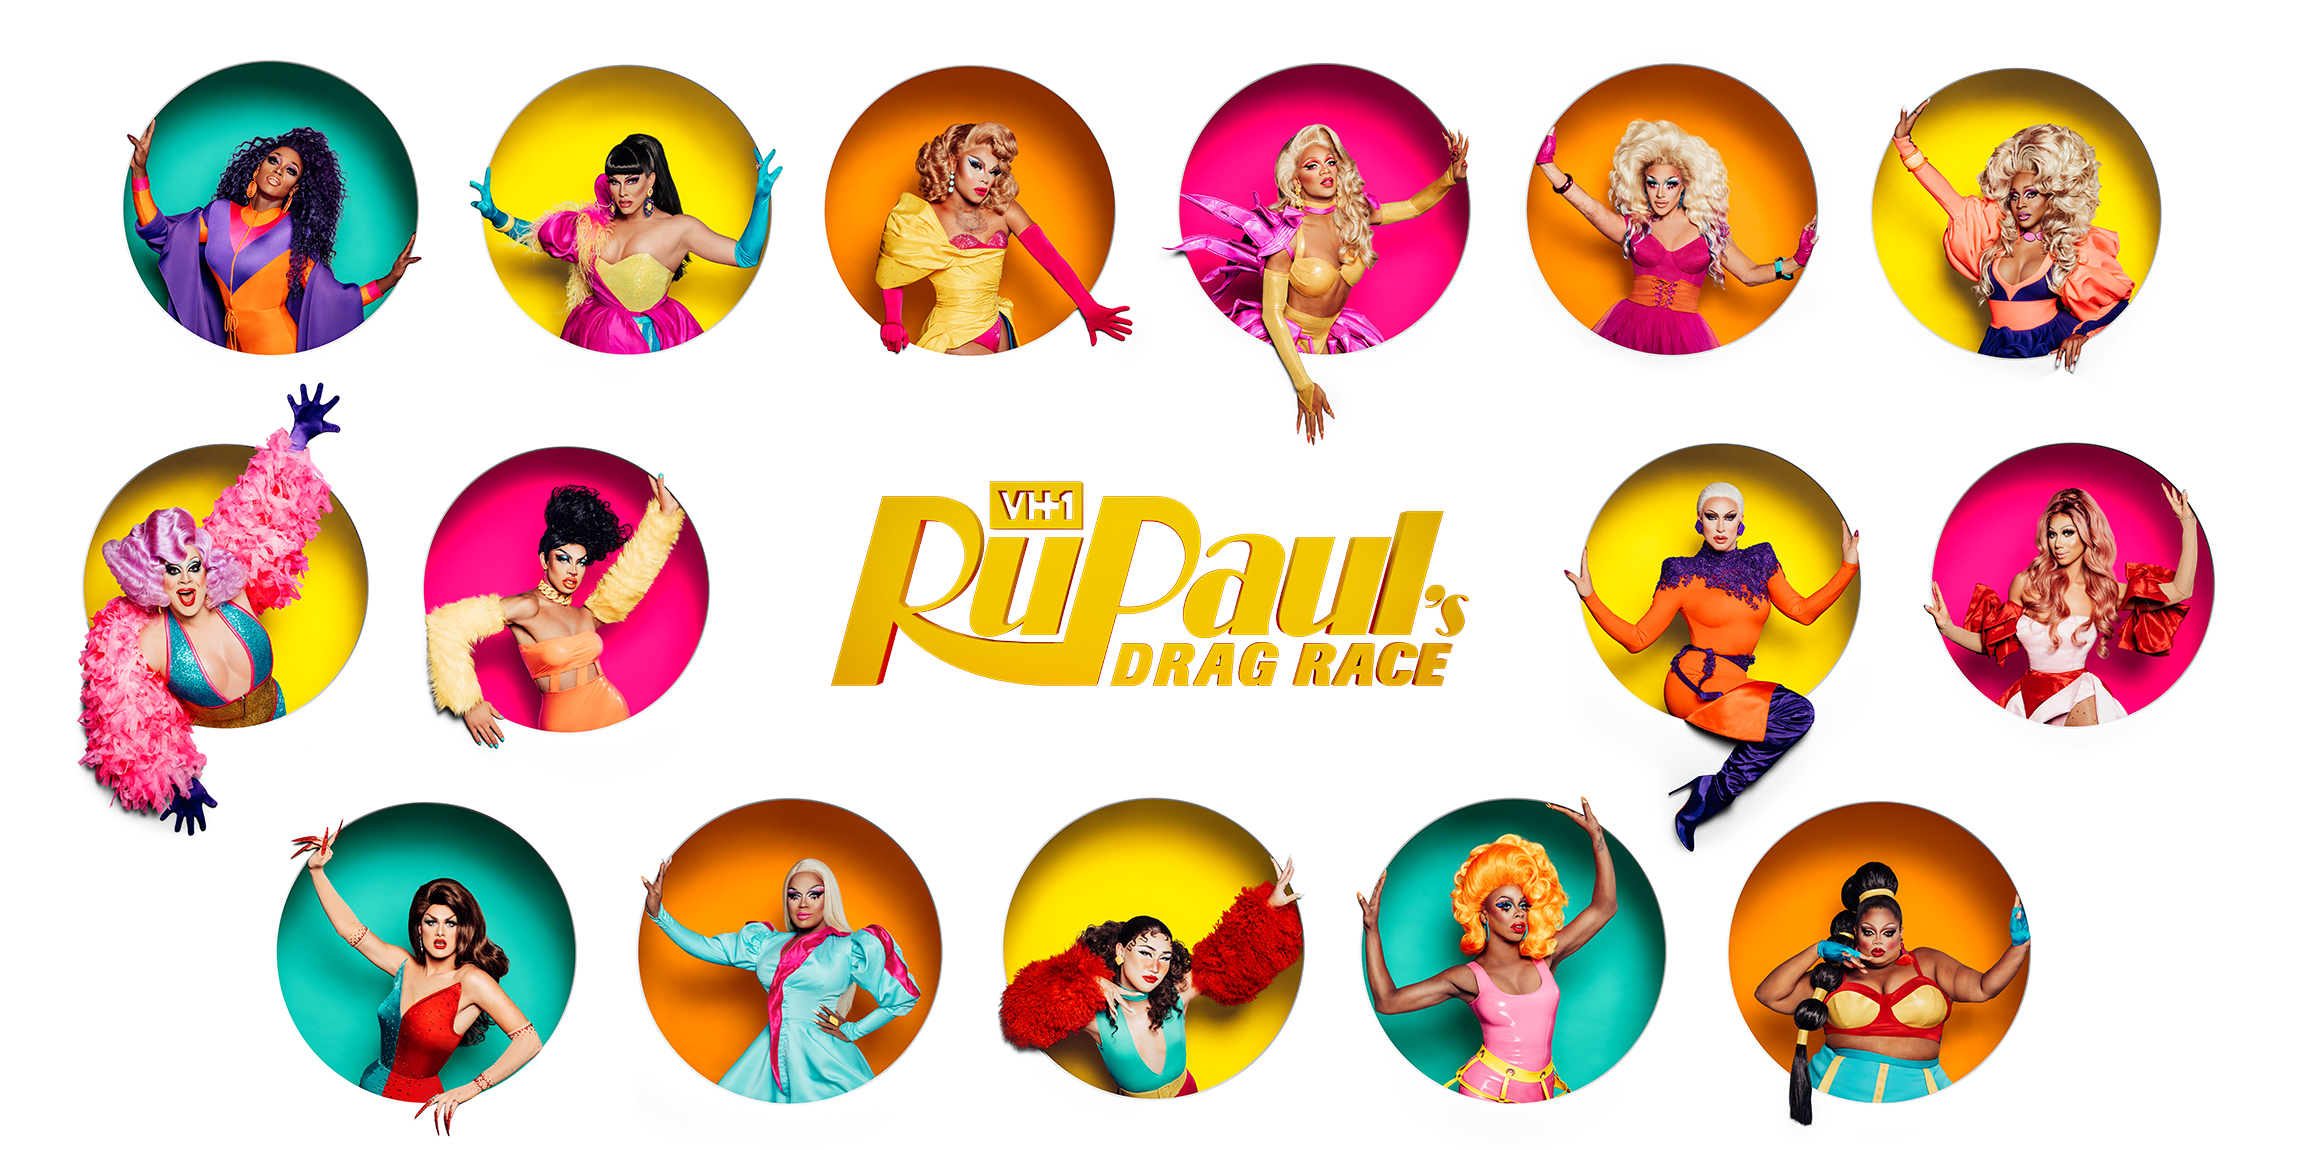 The 15 contestants on VH1 show RuPaul's Drag Race season 11